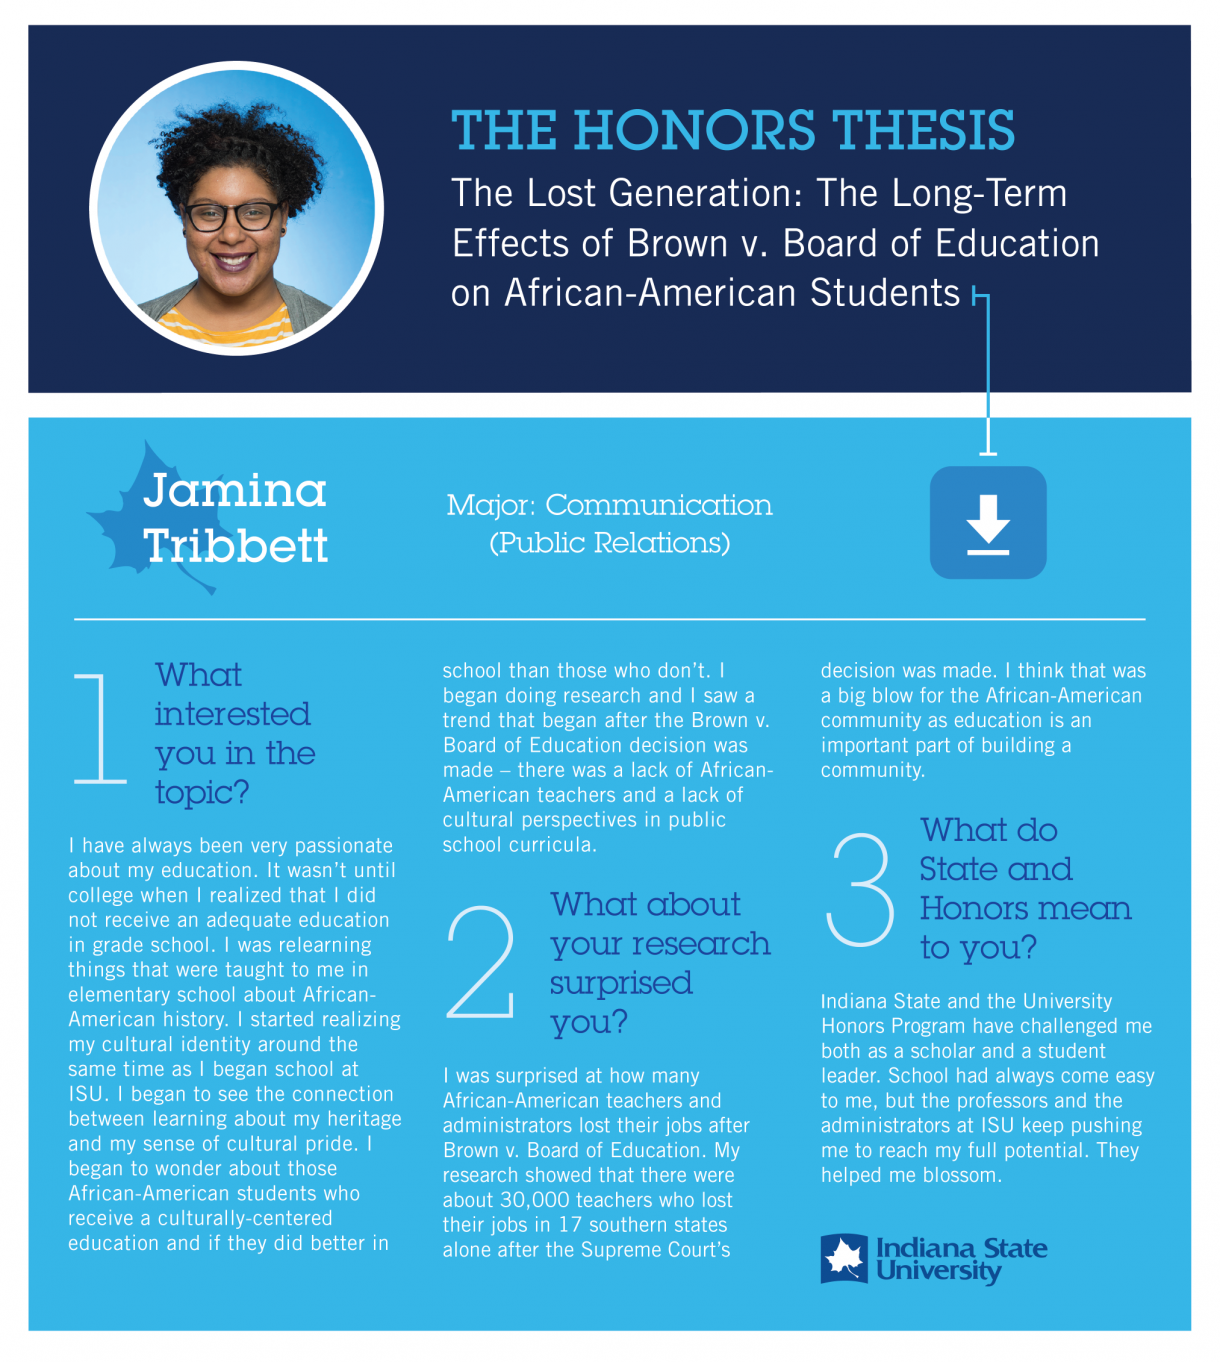 Honors Thesis: Jamina Tribbett